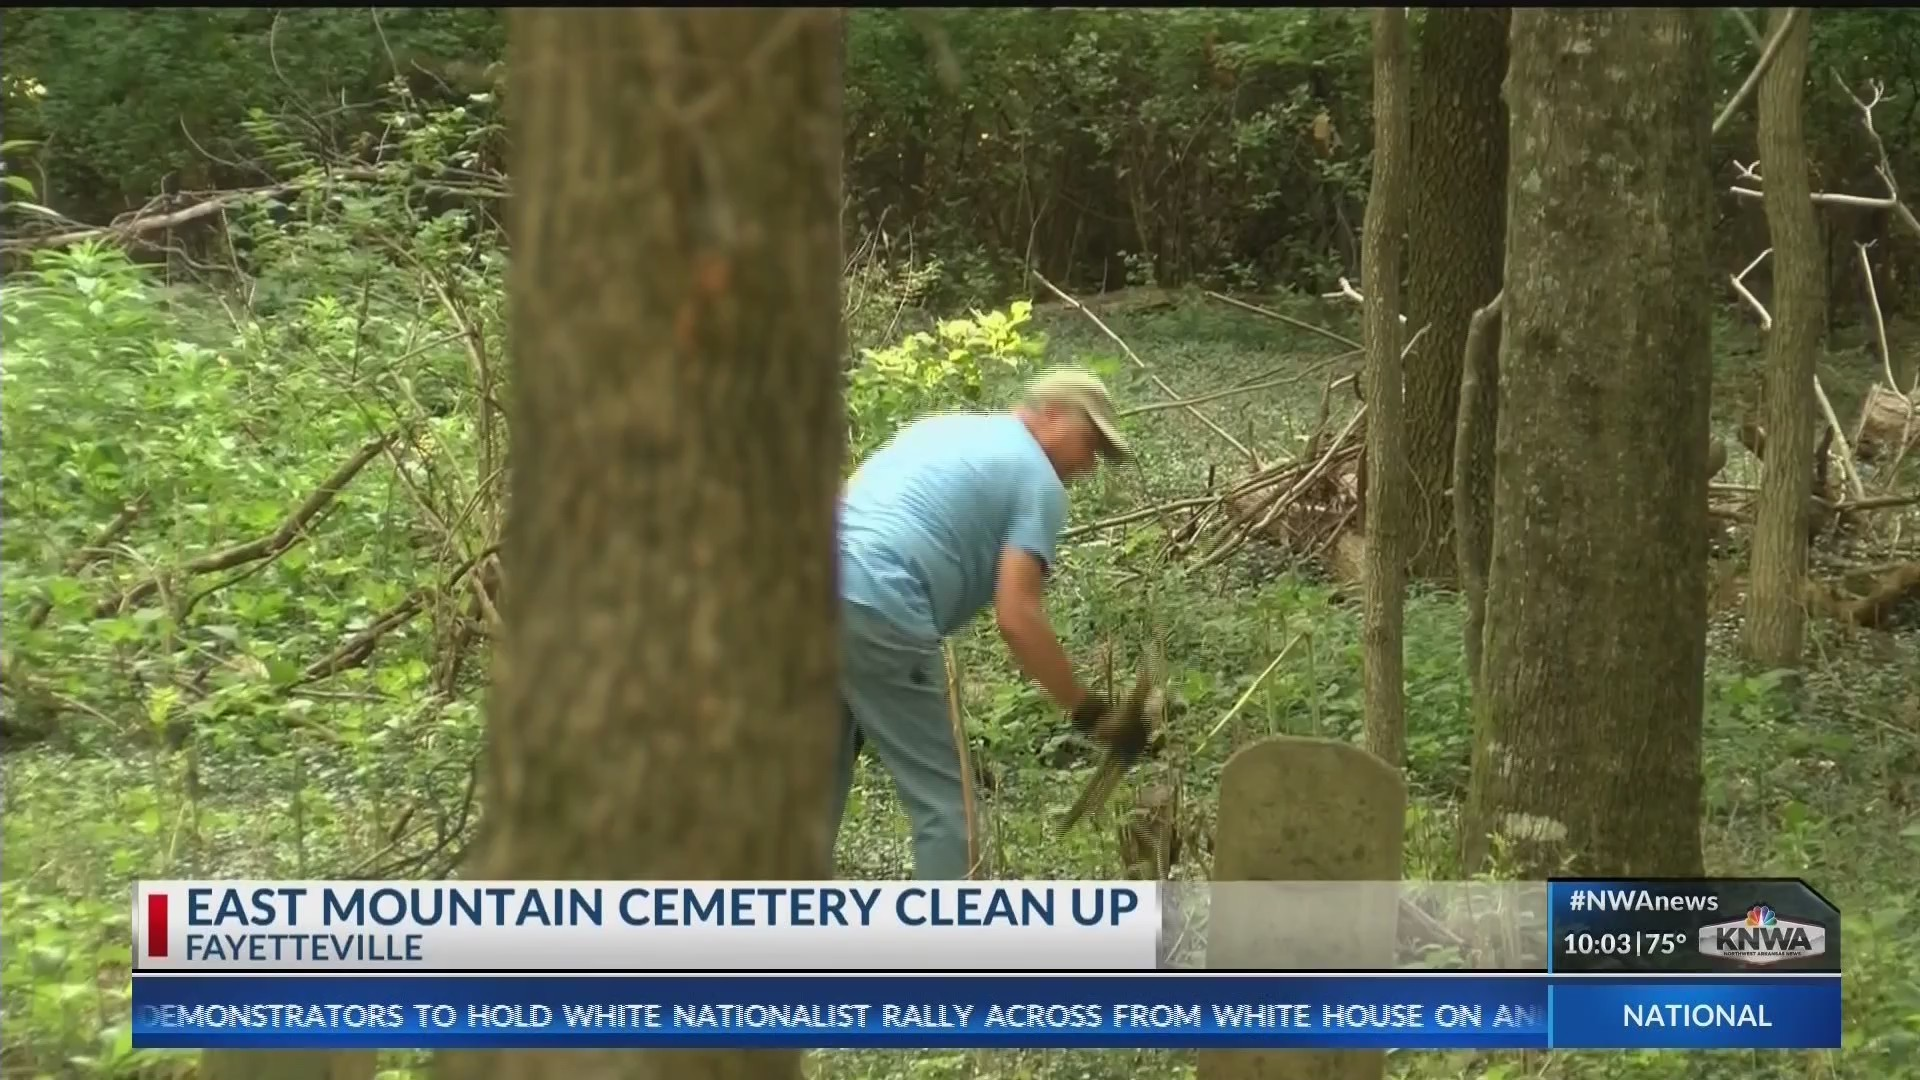 Volunteers Band Together to Restore East Mountain Cemetery